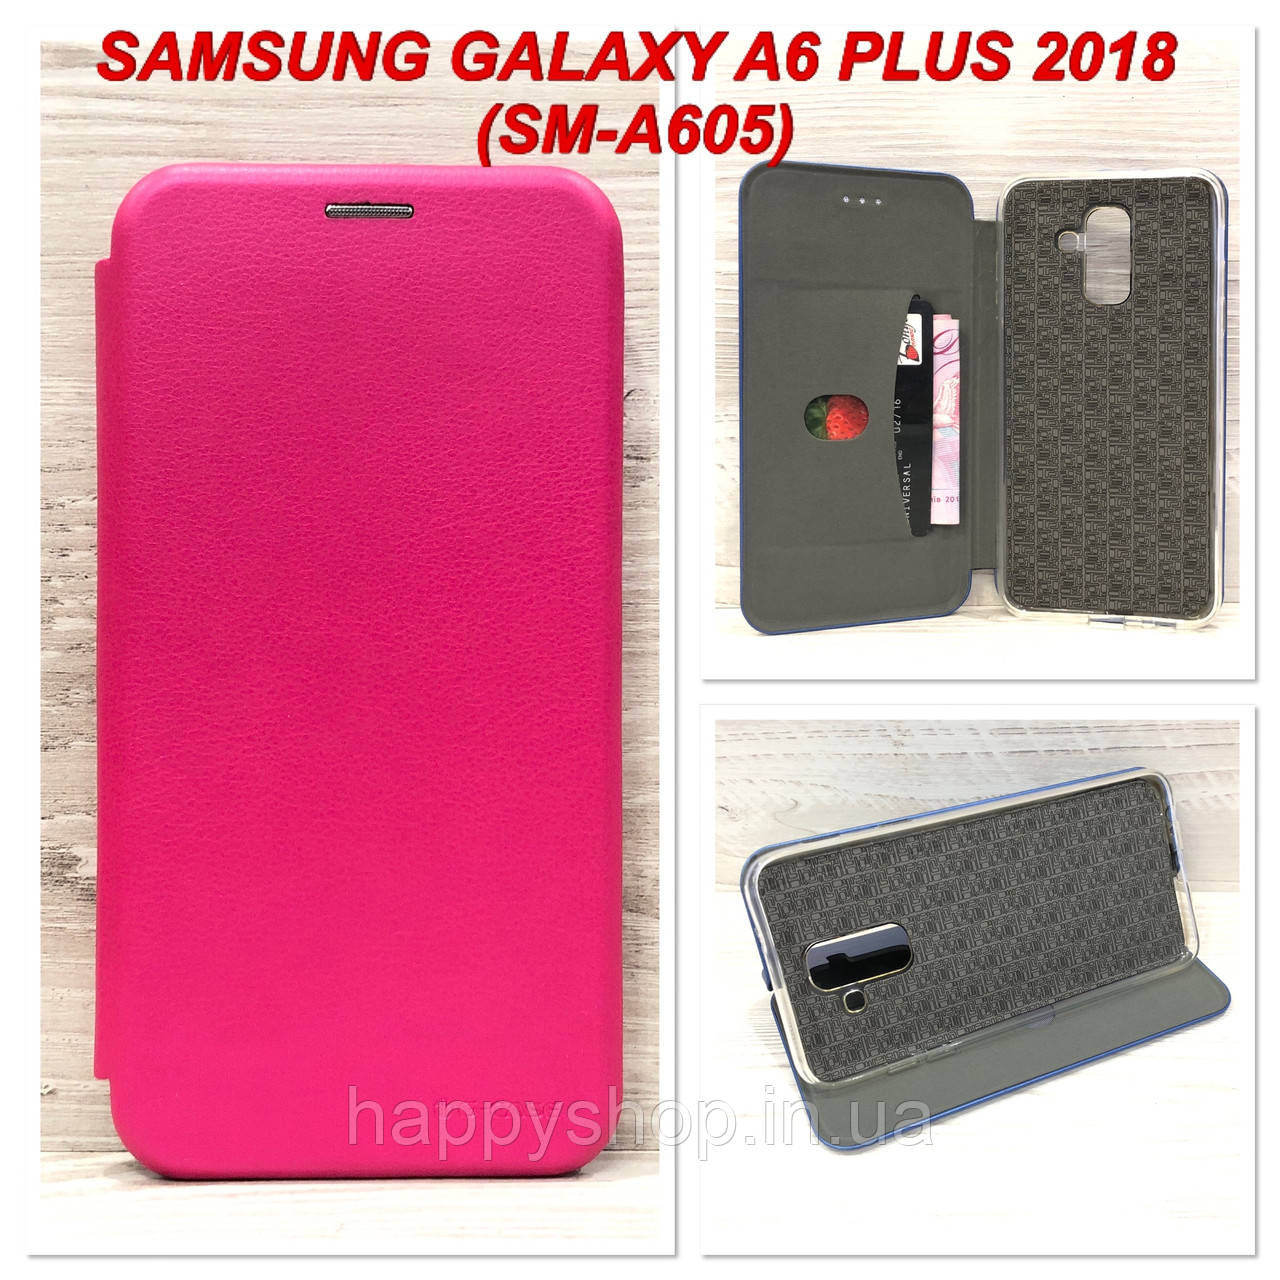 Чехол-книжка G-Case для Samsung Galaxy A6 Plus 2018 (A605) Розовый